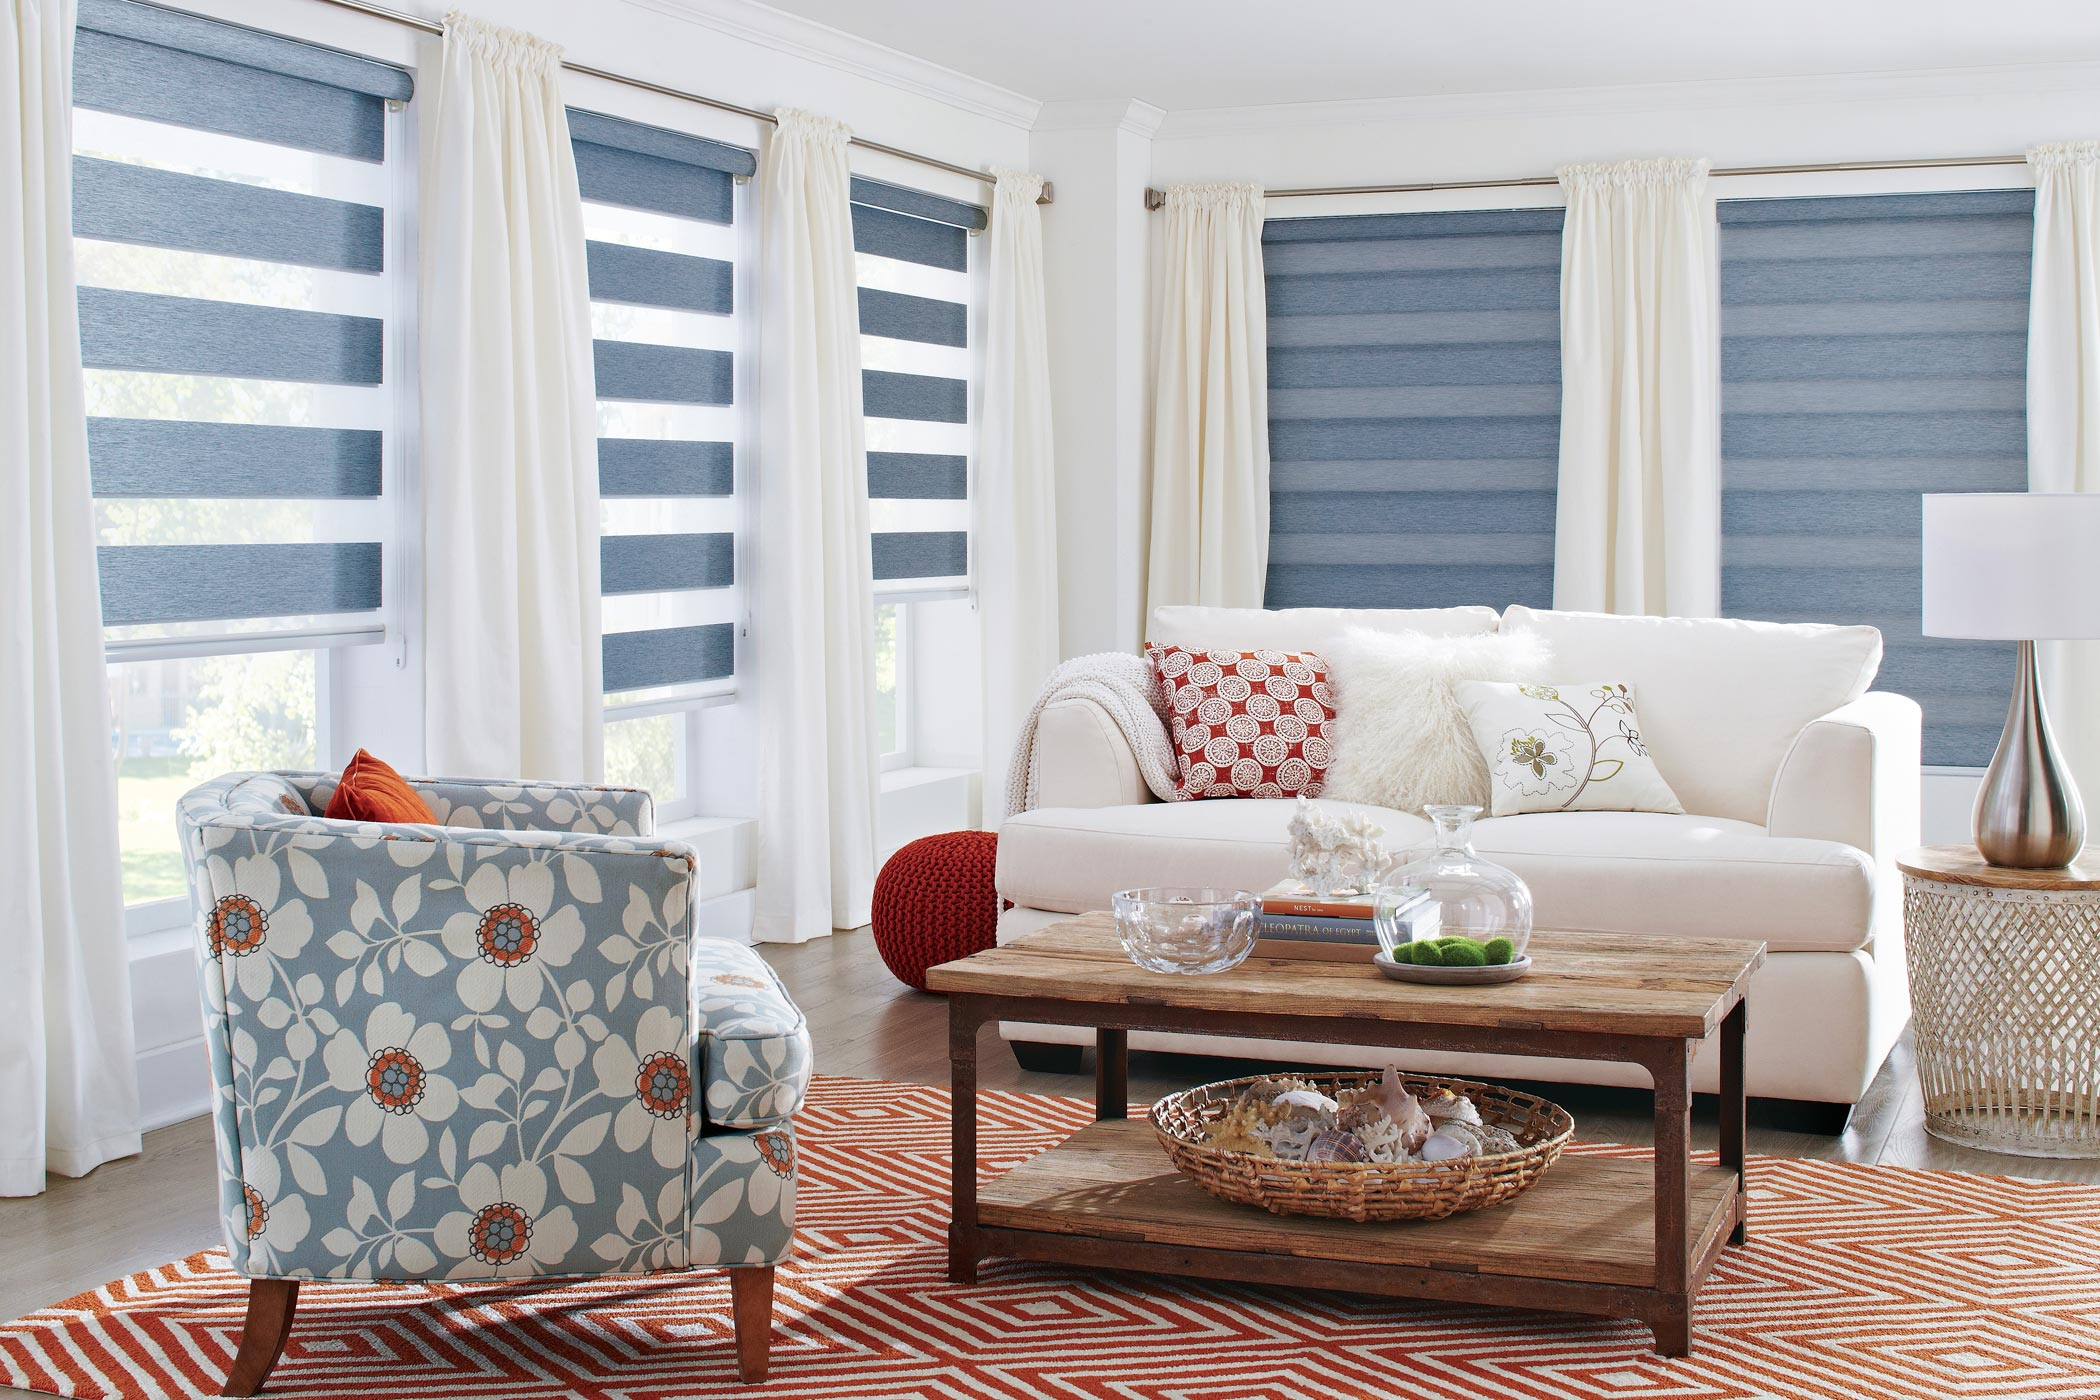 a bright white living room with a floral print chair and throw pillows with windows covered in striped dual shades